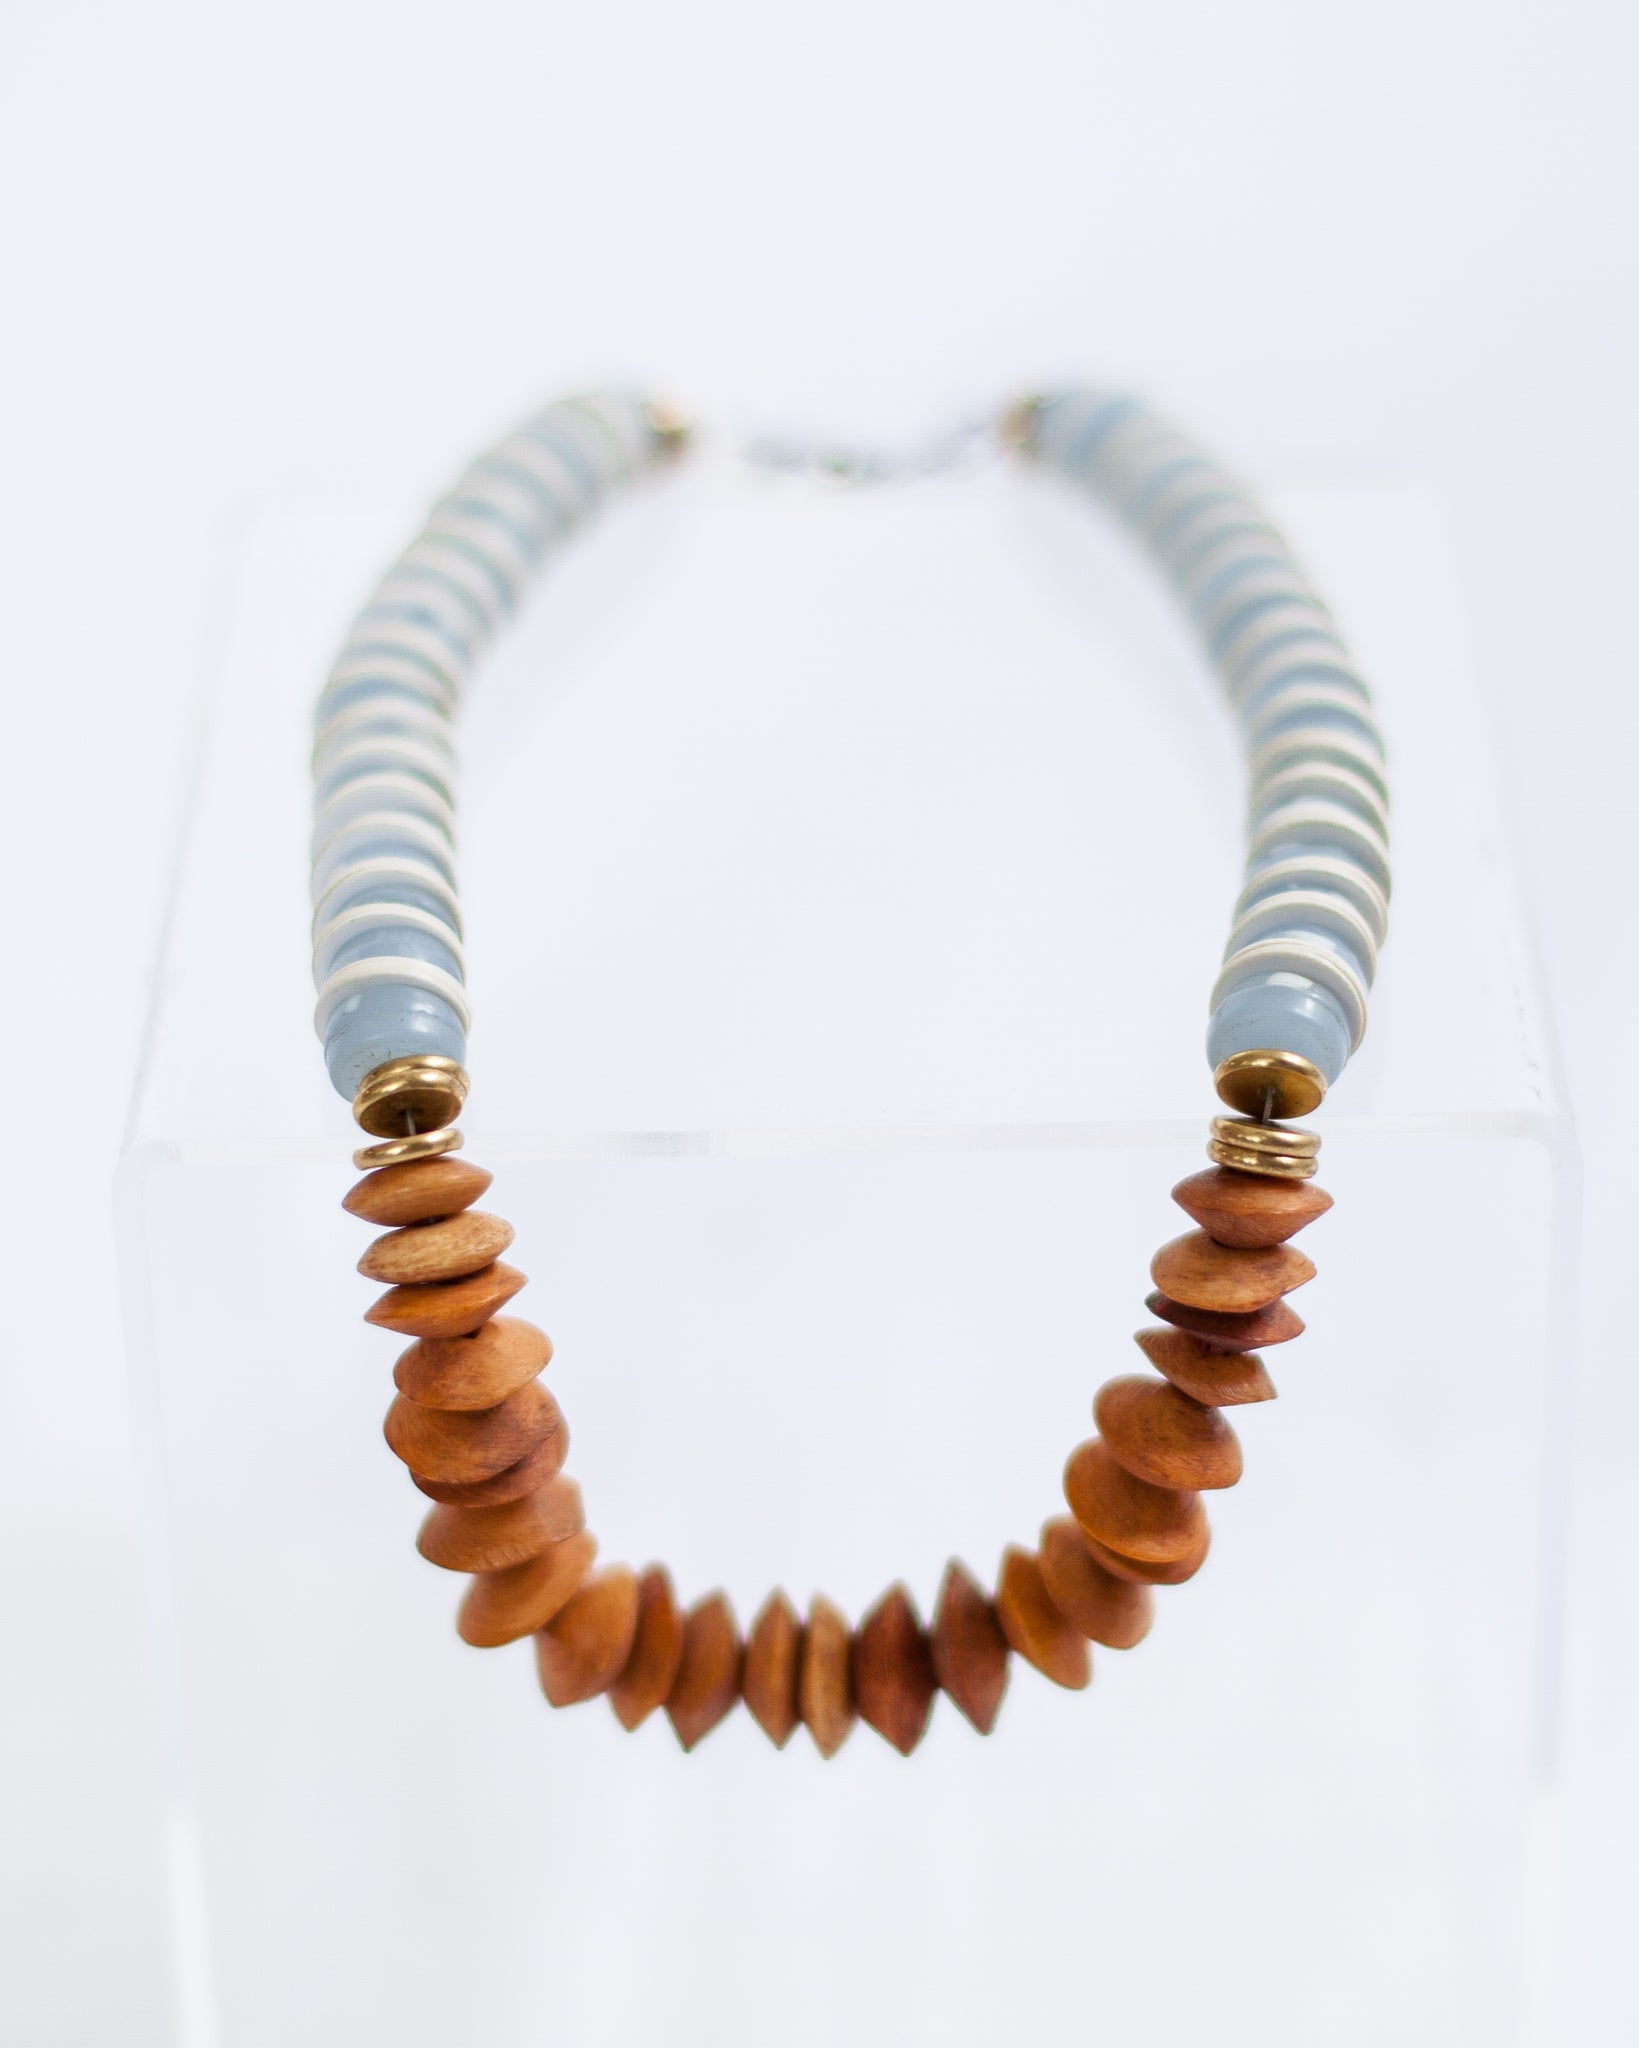 Wood with Blue and White Necklace